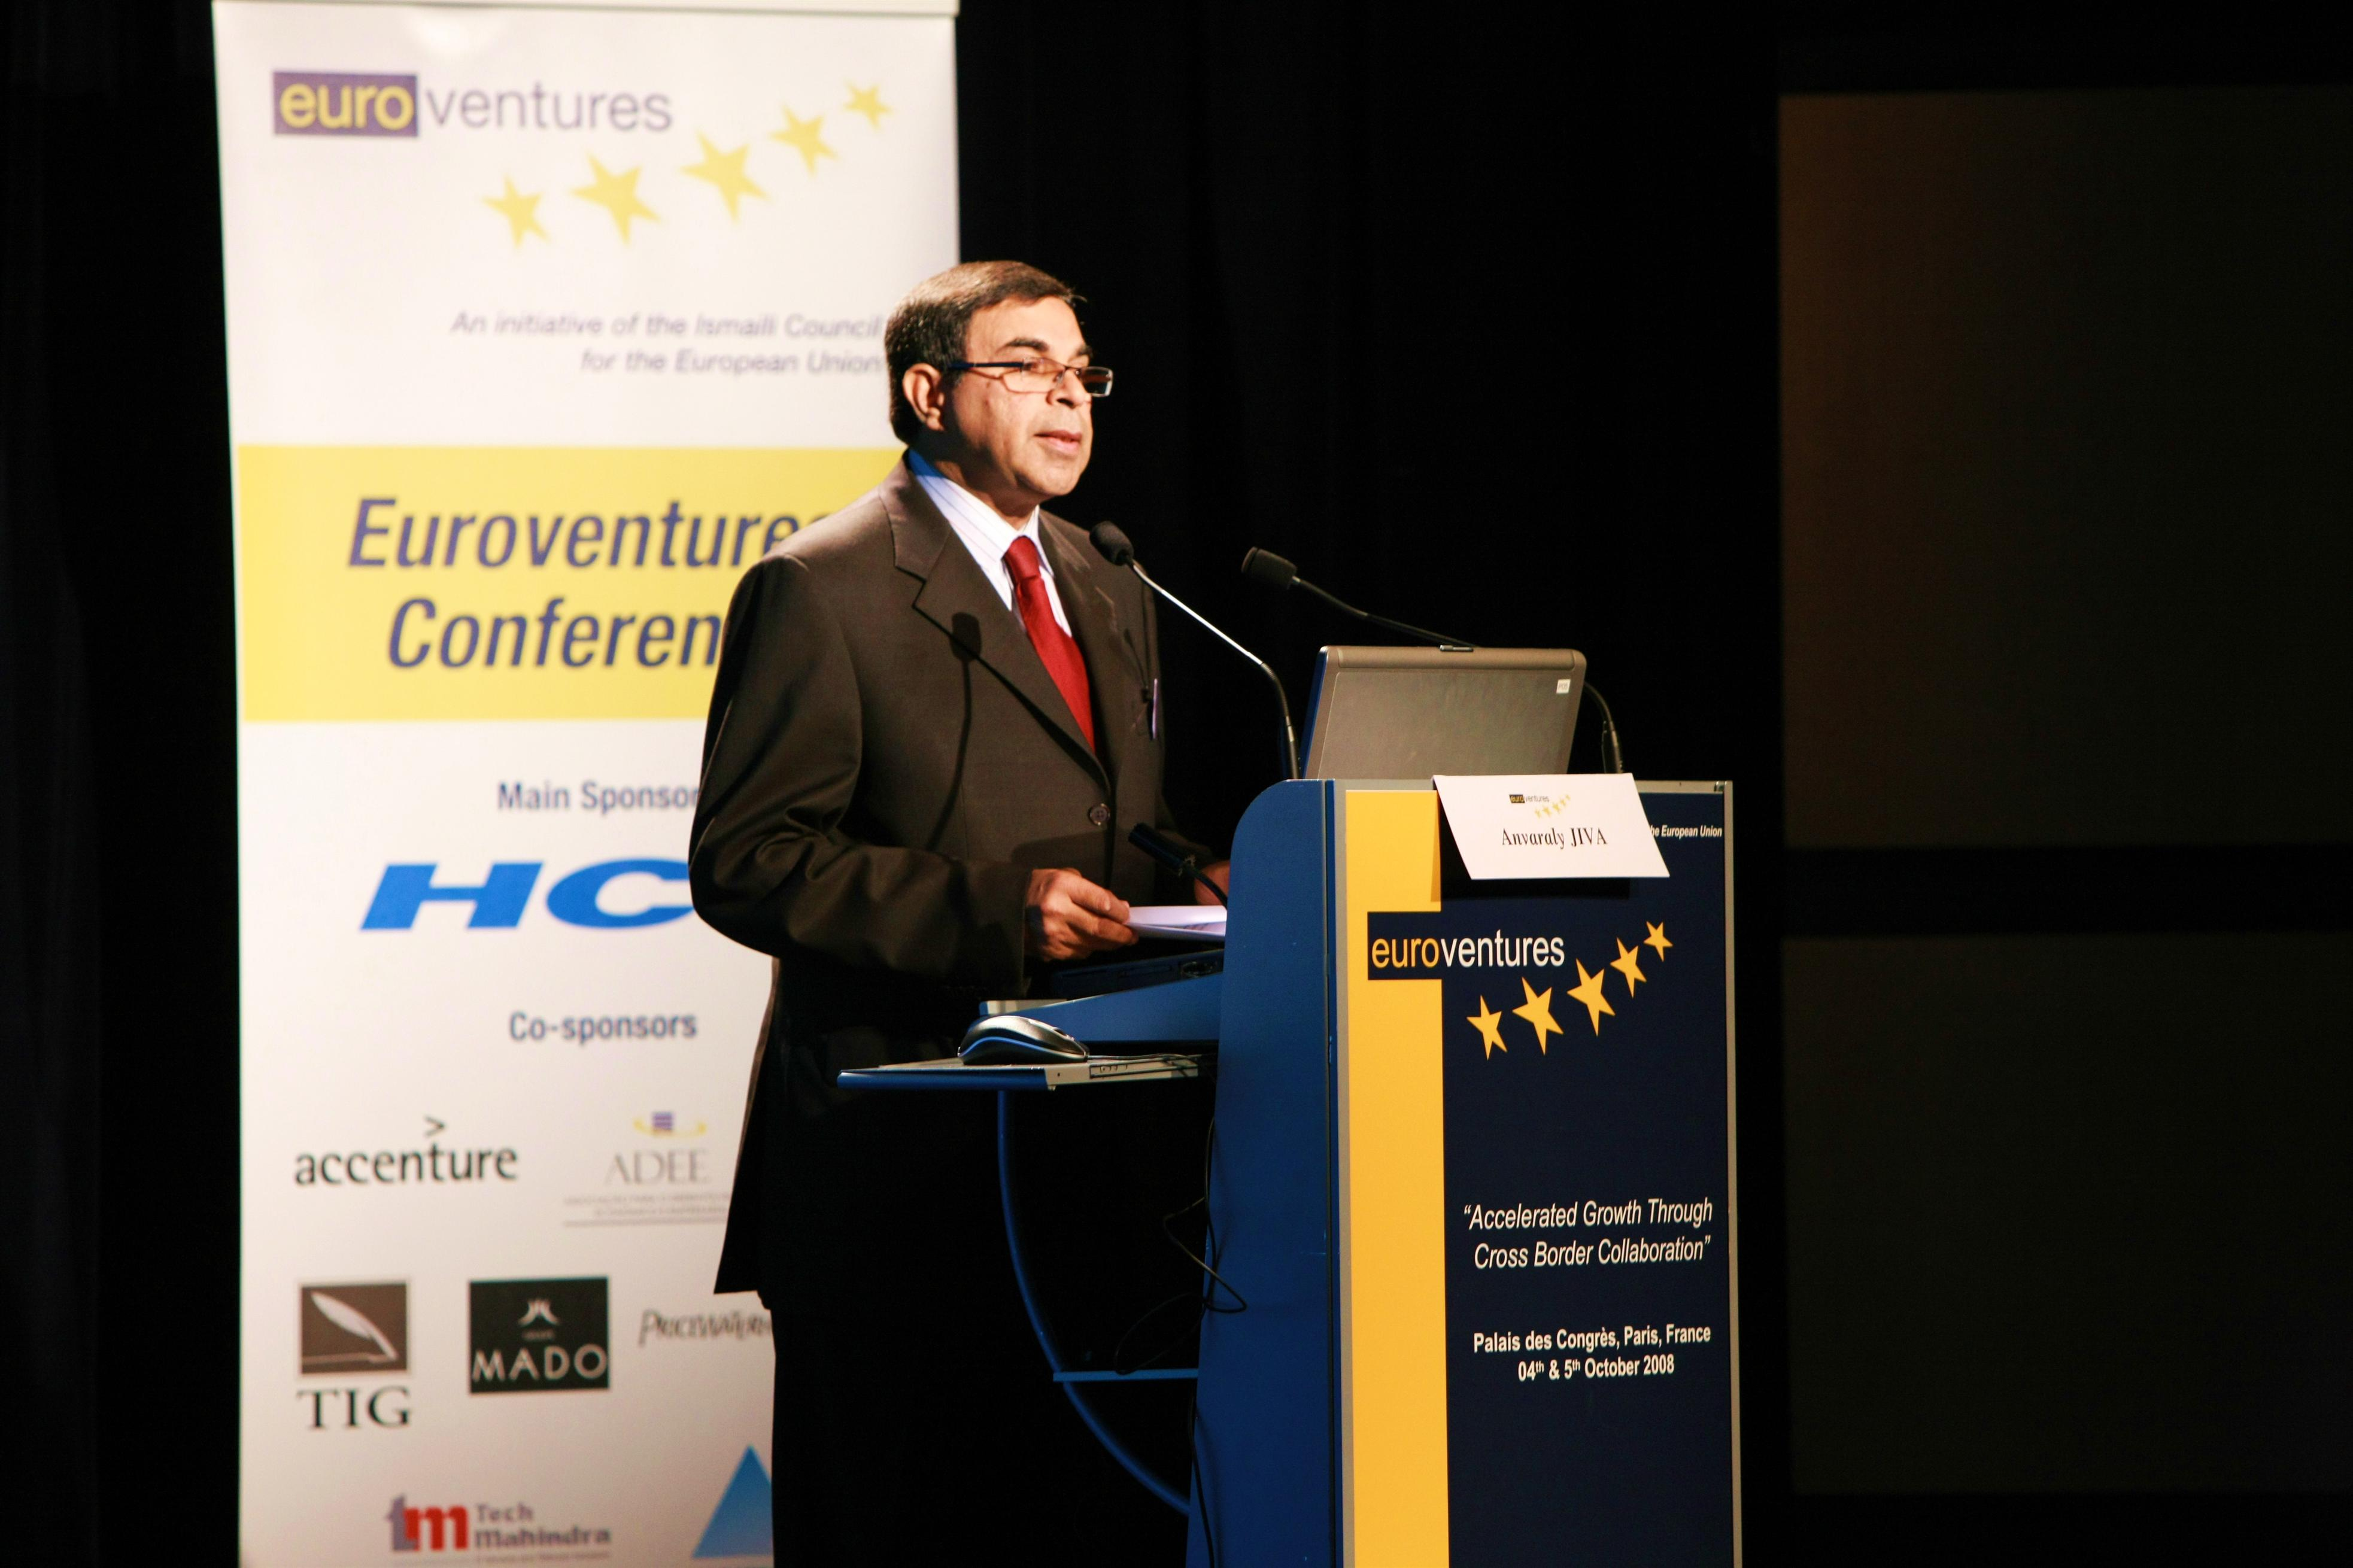 ICEU President Anvaraly Jiva addresses the audience at the Euroventures Conference in Paris. Photo: Courtesy of the Ismaili Council for the EU